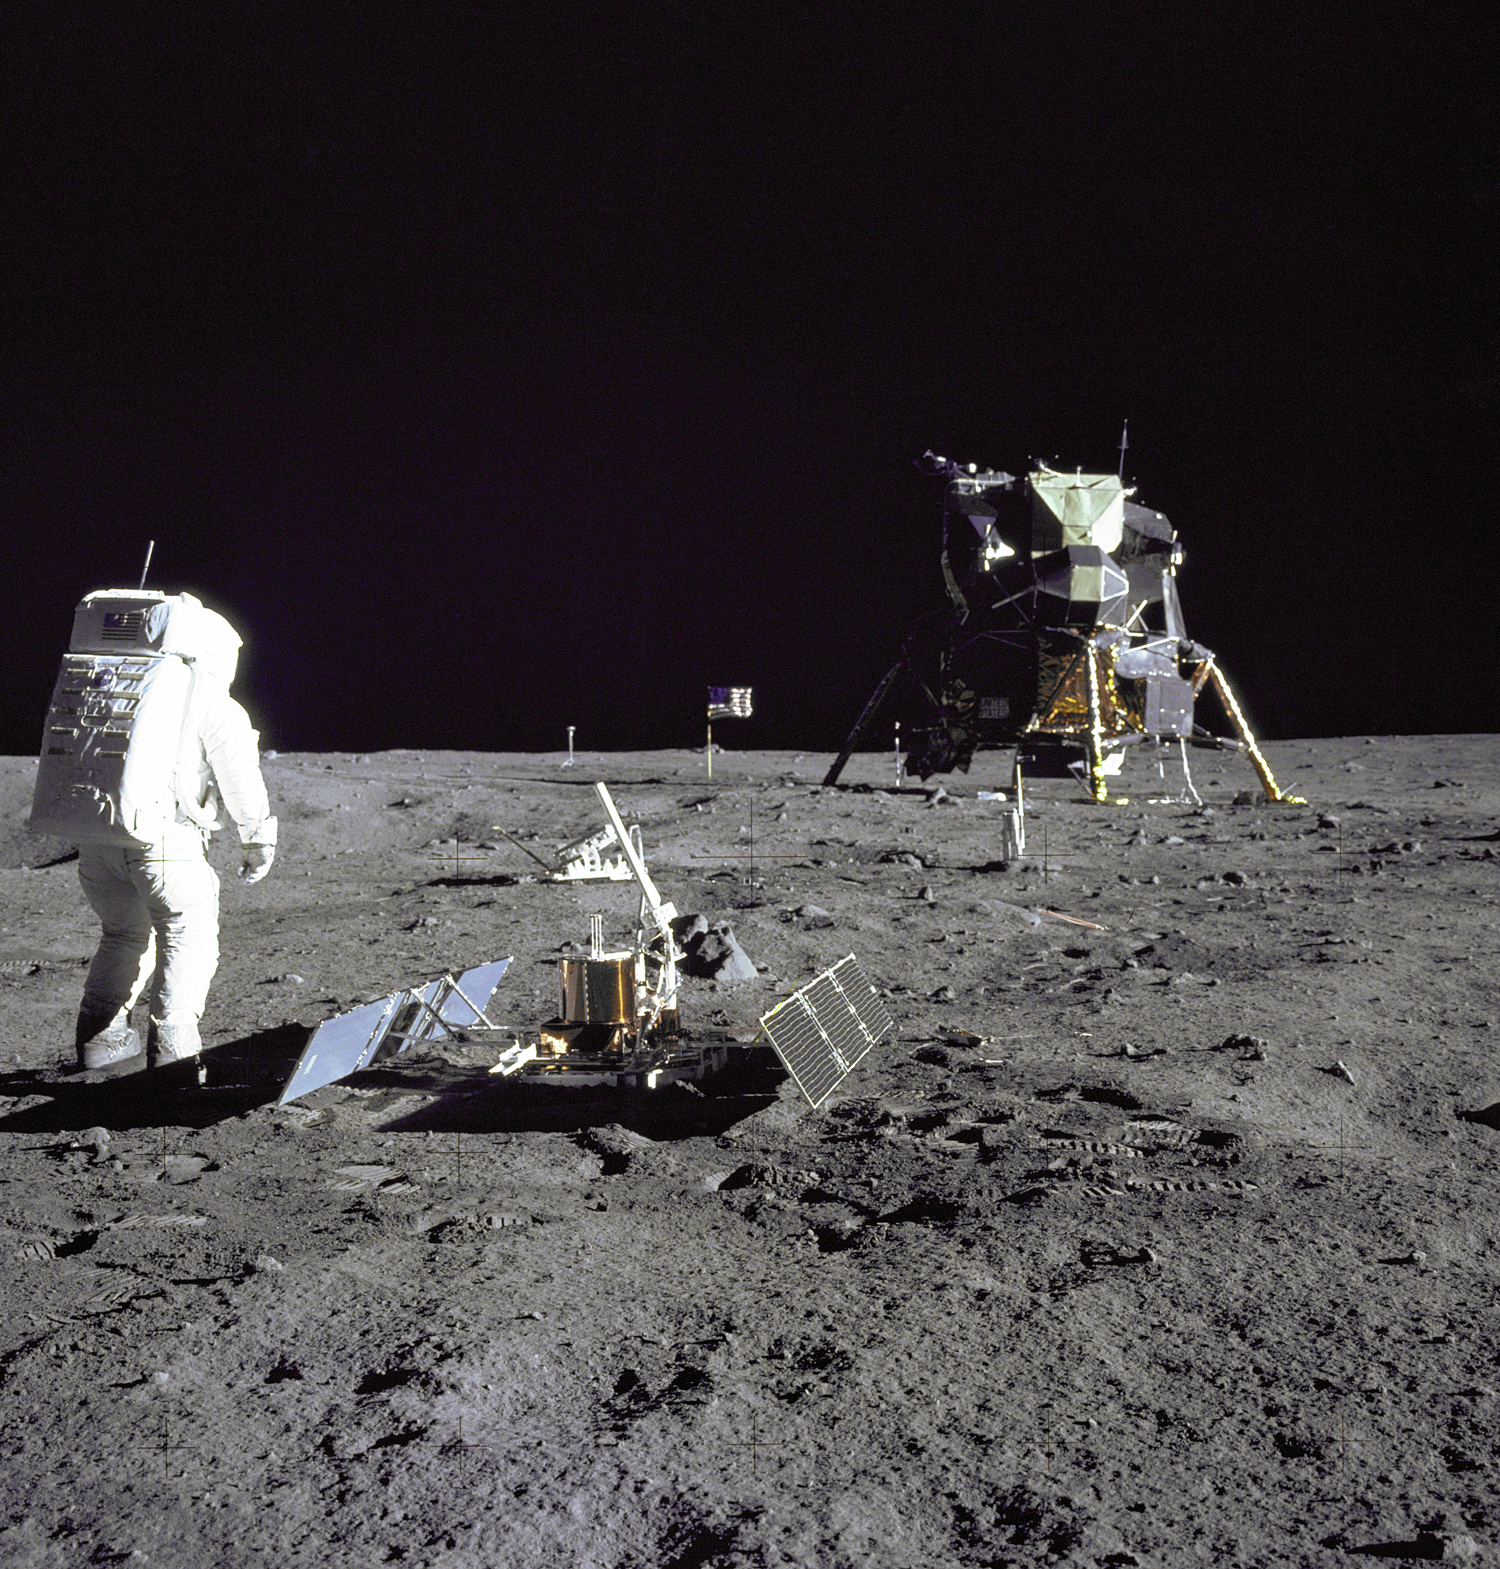 Apollo 11 experiments